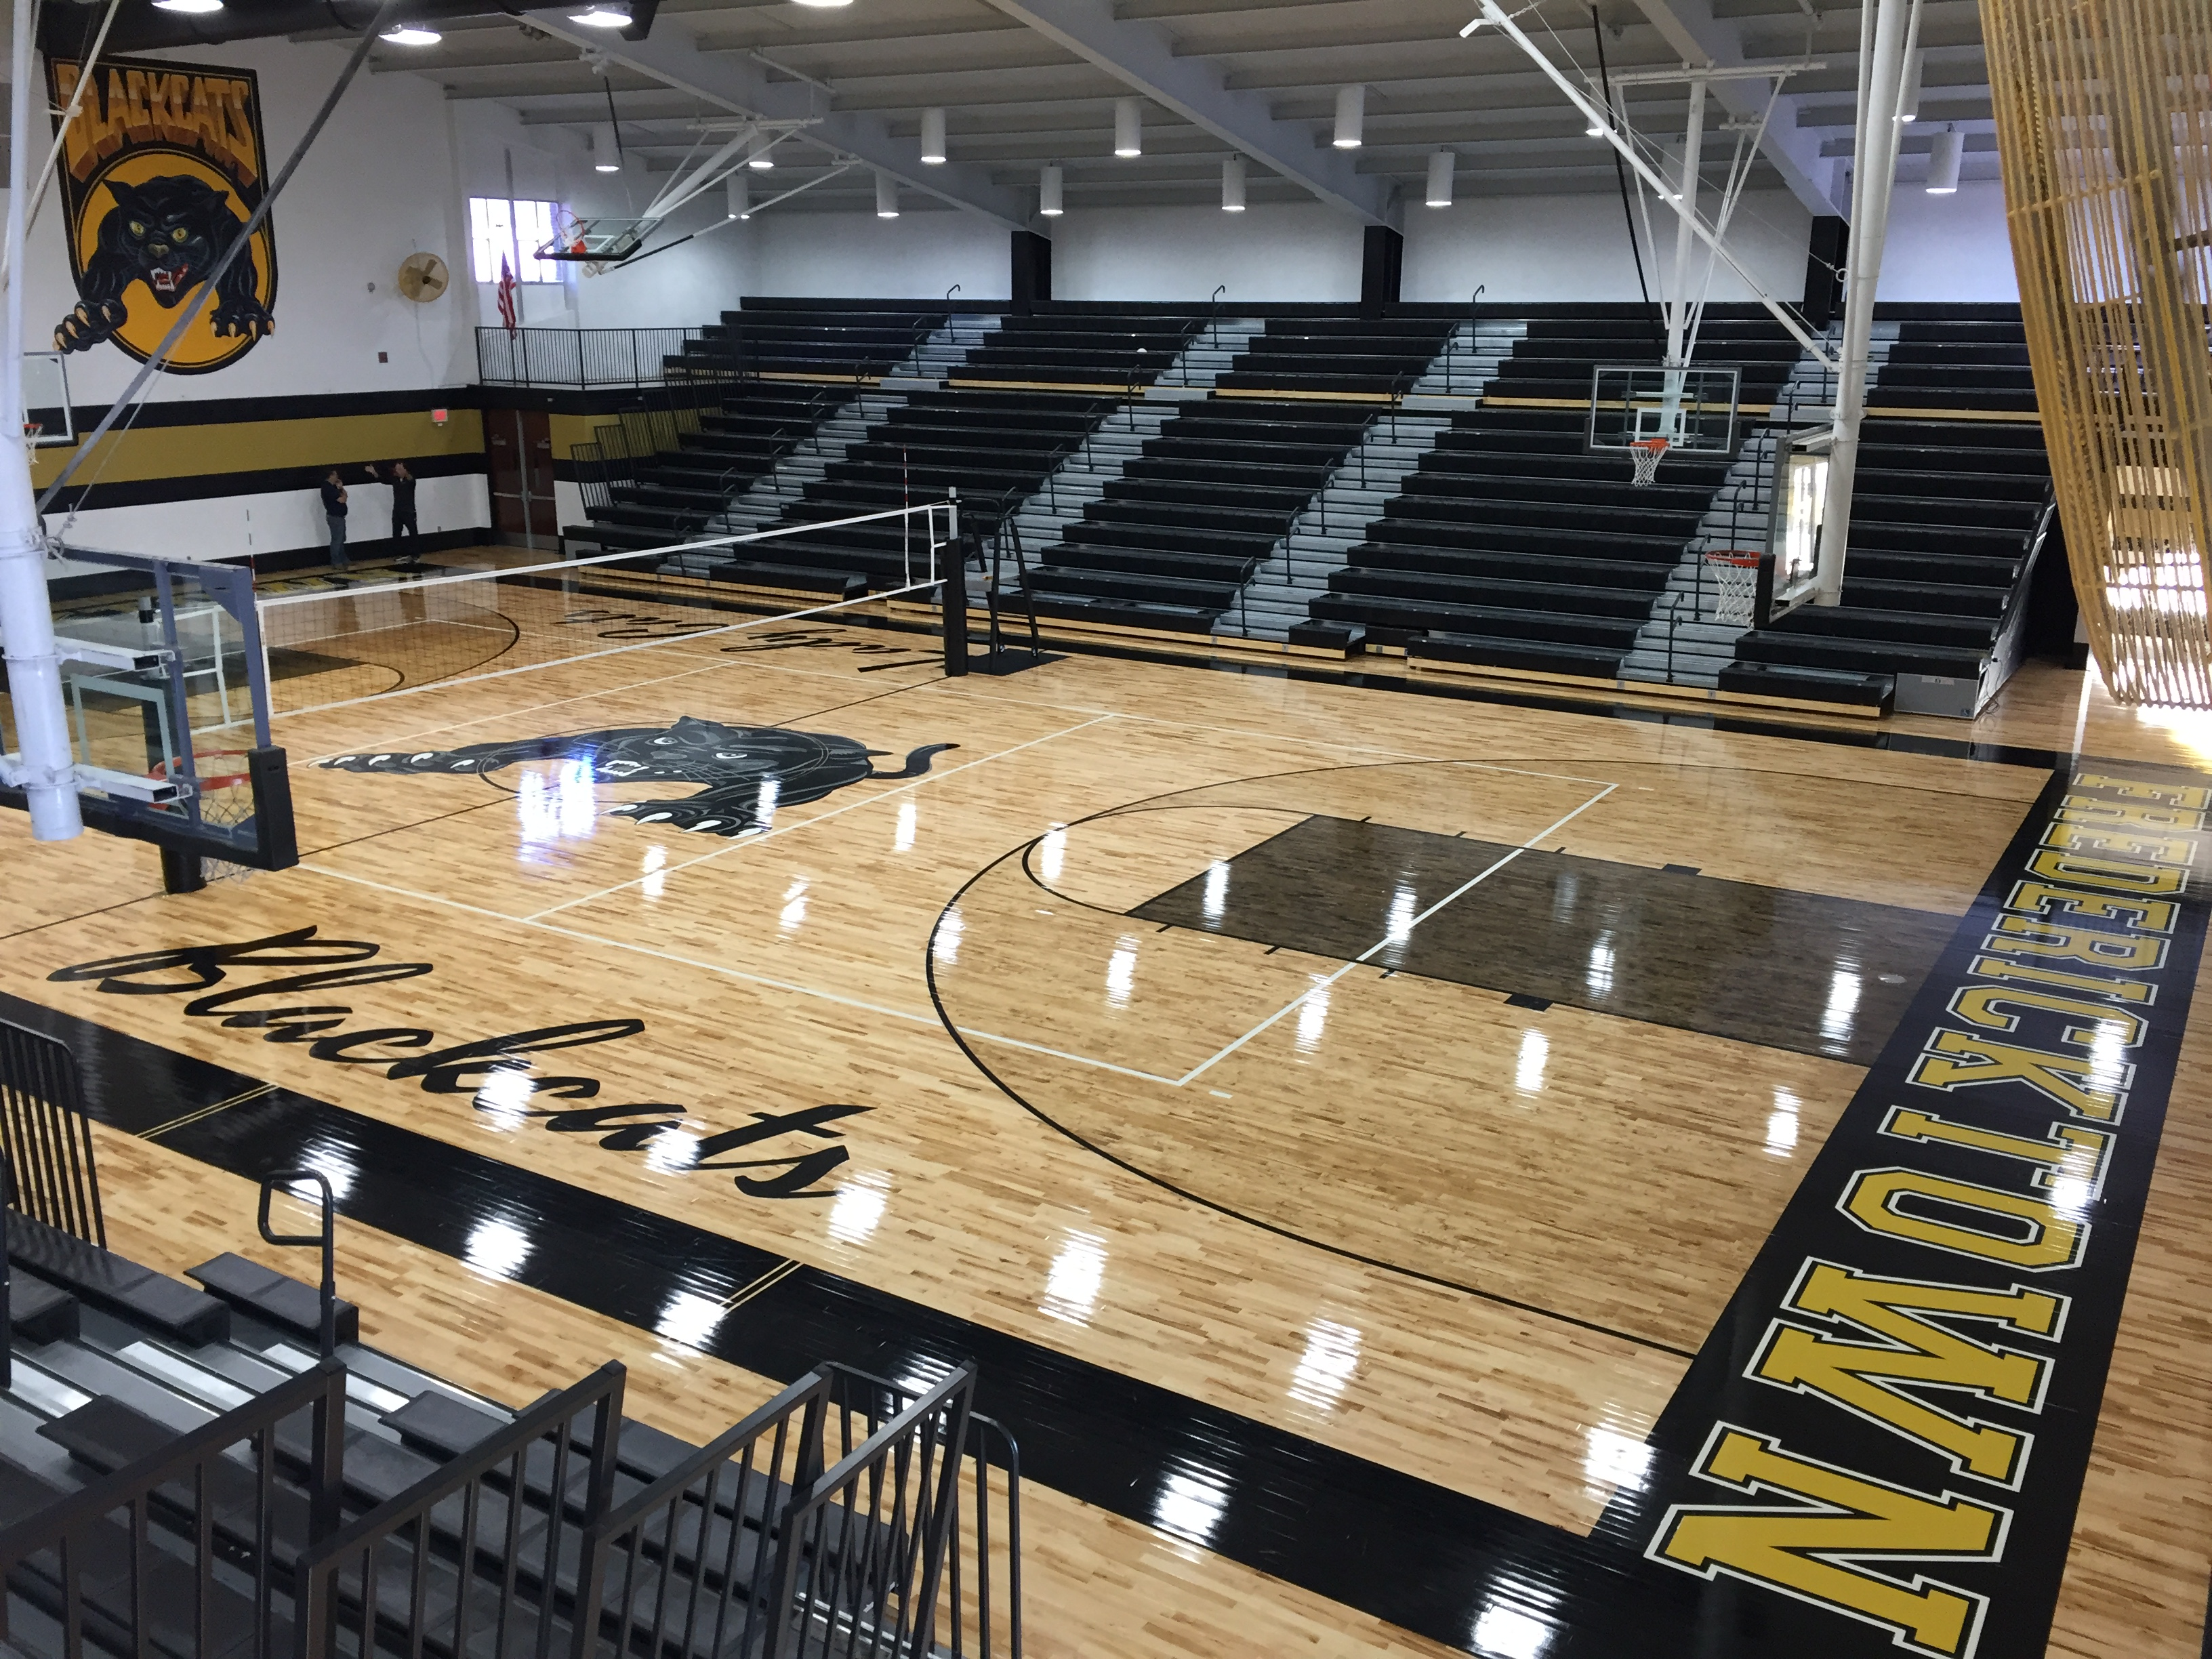 gympro runners mats floor gym covers courtside next previous